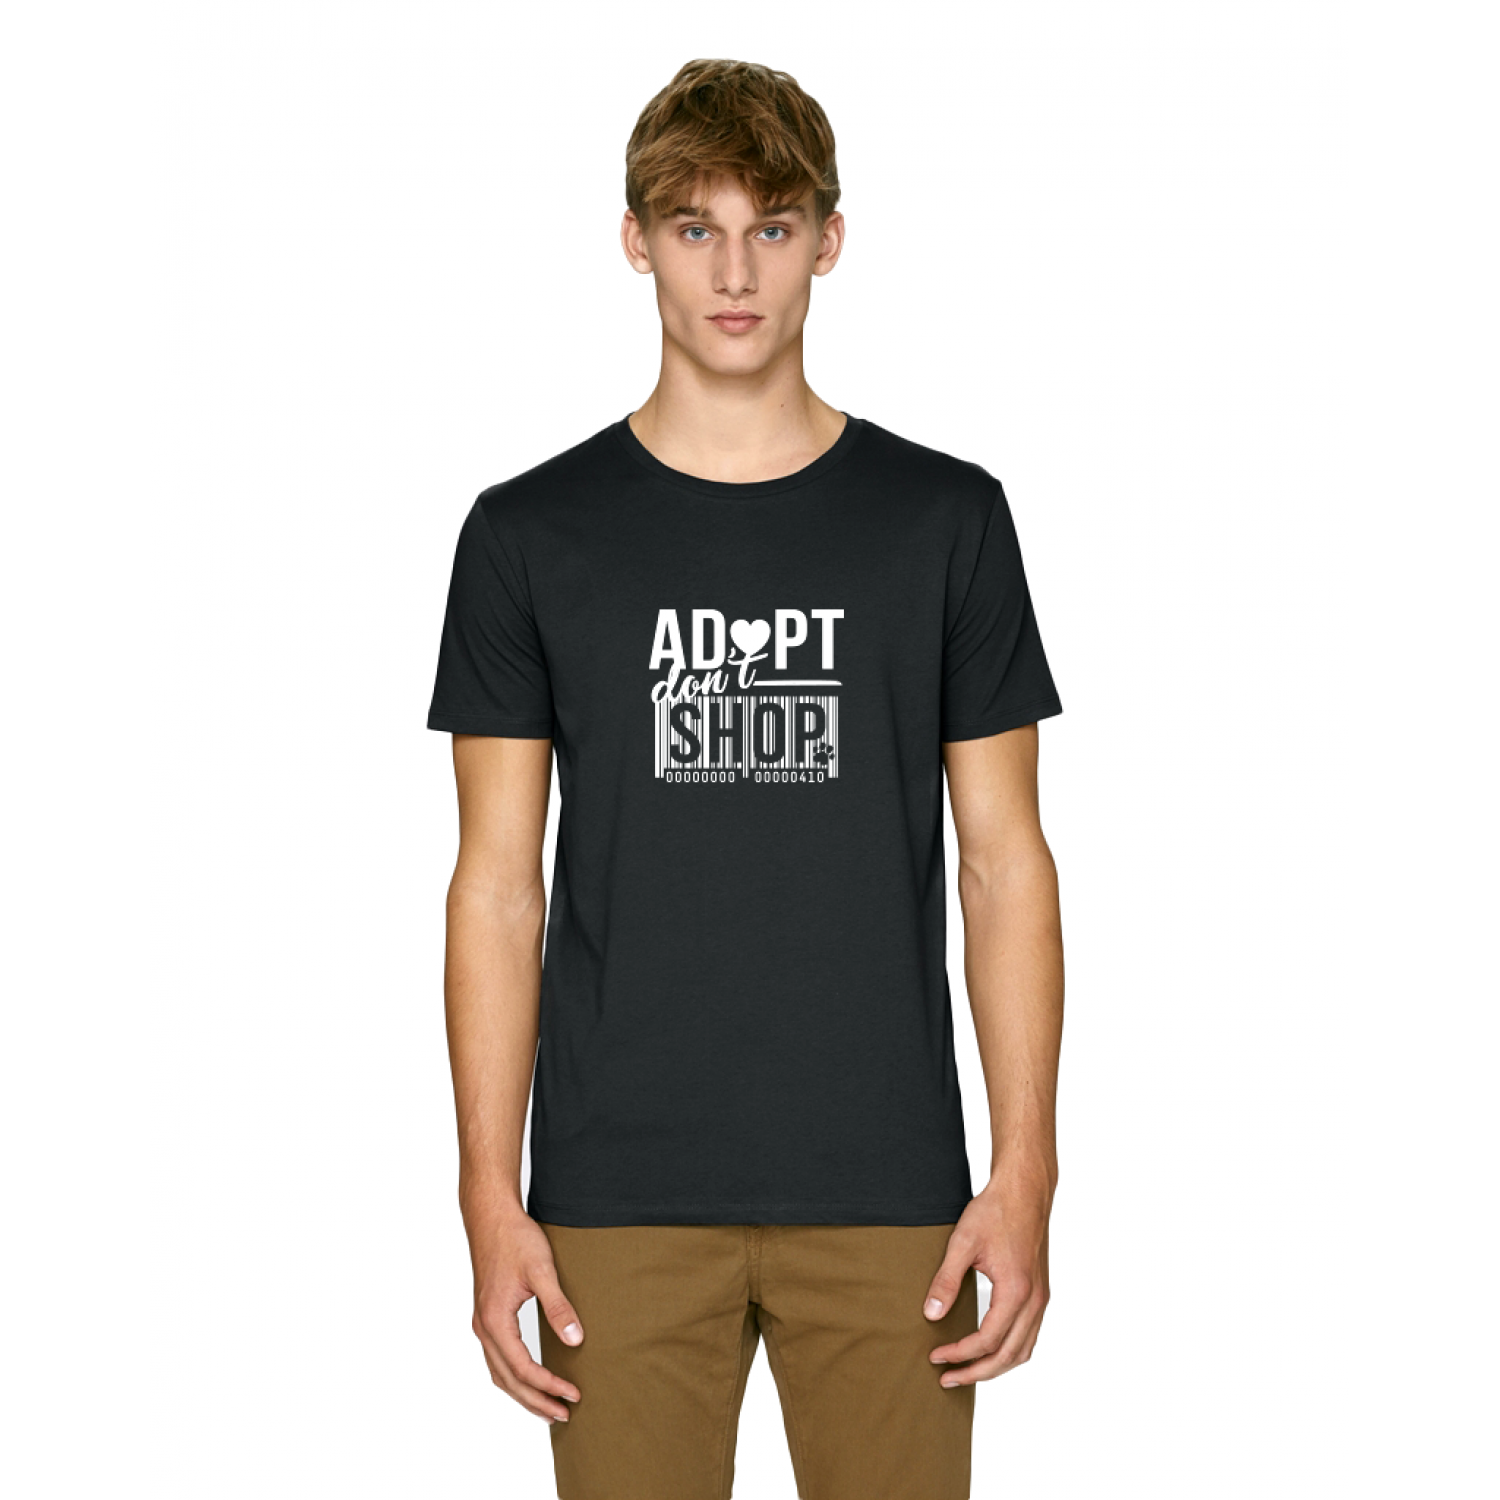 ADOPT DON'T SHOP T-Shirt (Charity Project)